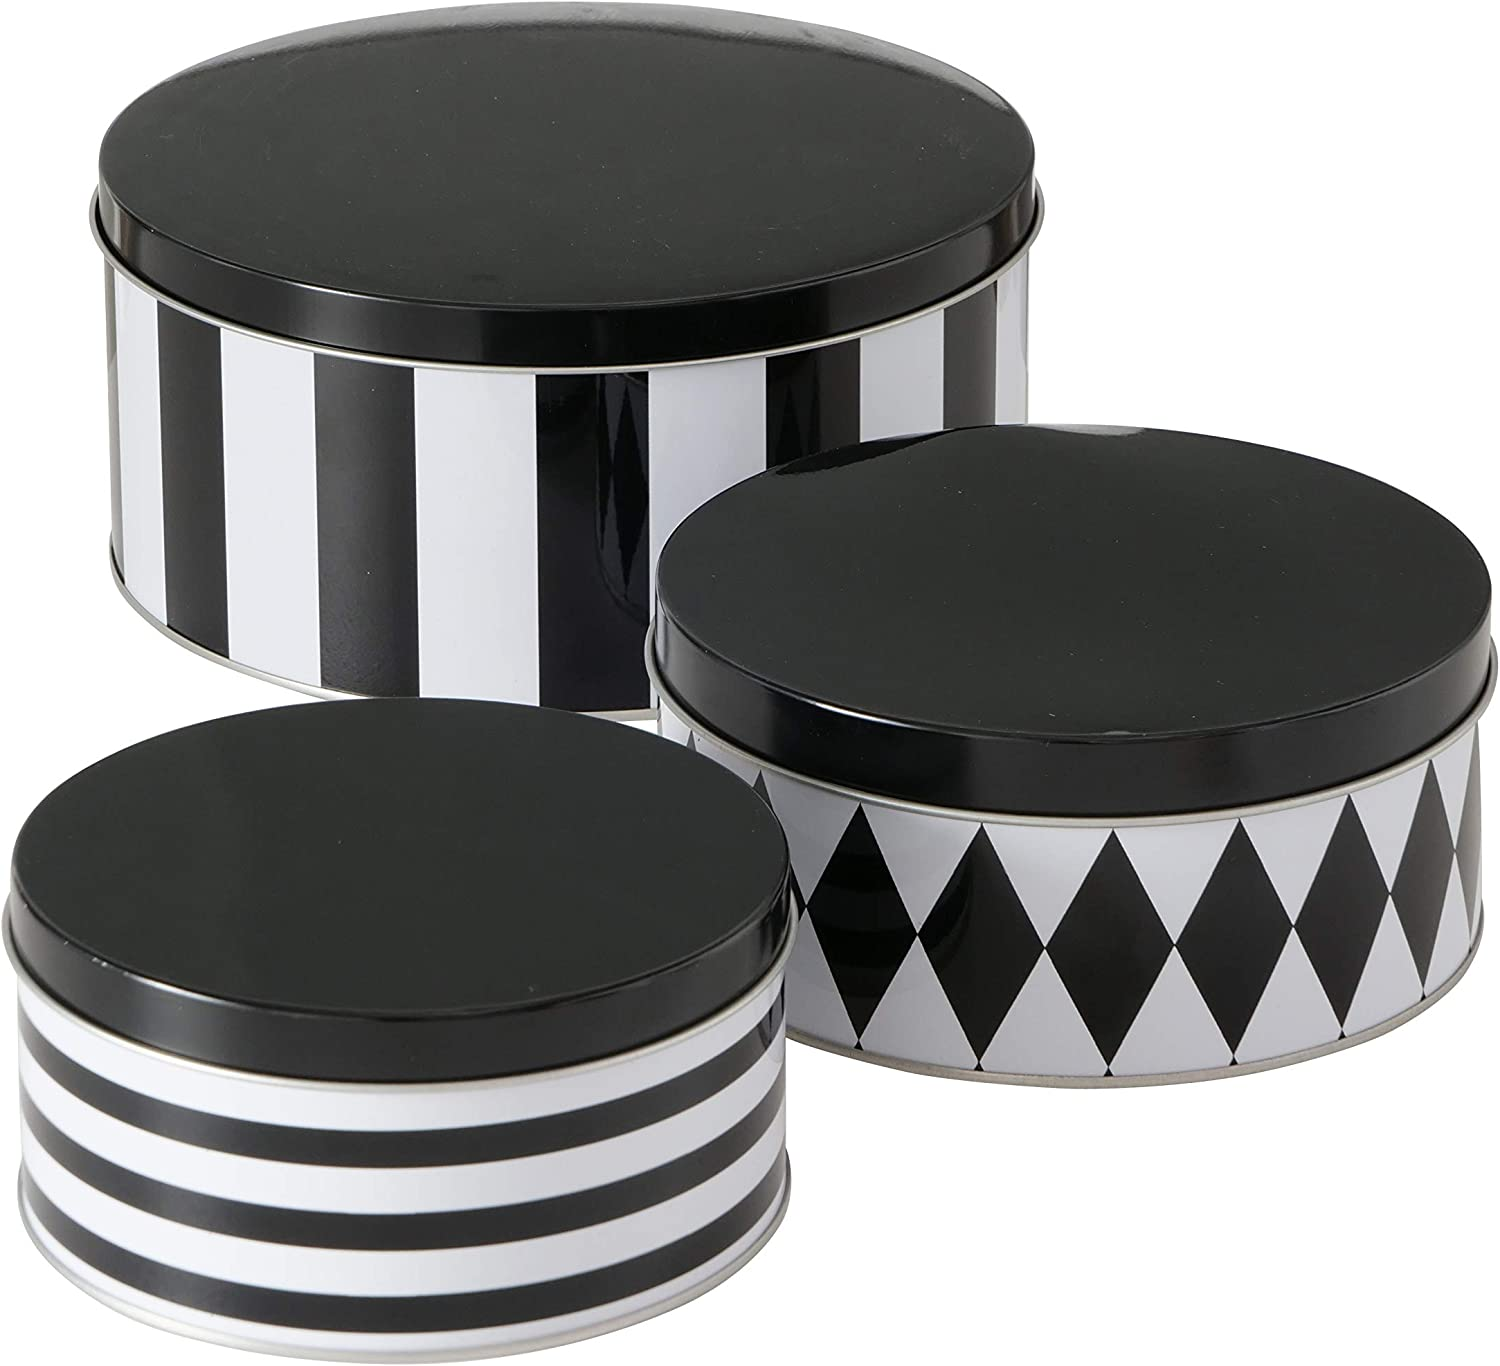 WHW Whole House Worlds 3 Piece Black and White Cookie Tins with Detachable Lids, Set of 3, Nesting, 7.75, 5.5, and 6.25 Inches, Food Safe, Metal, Storage and Organization